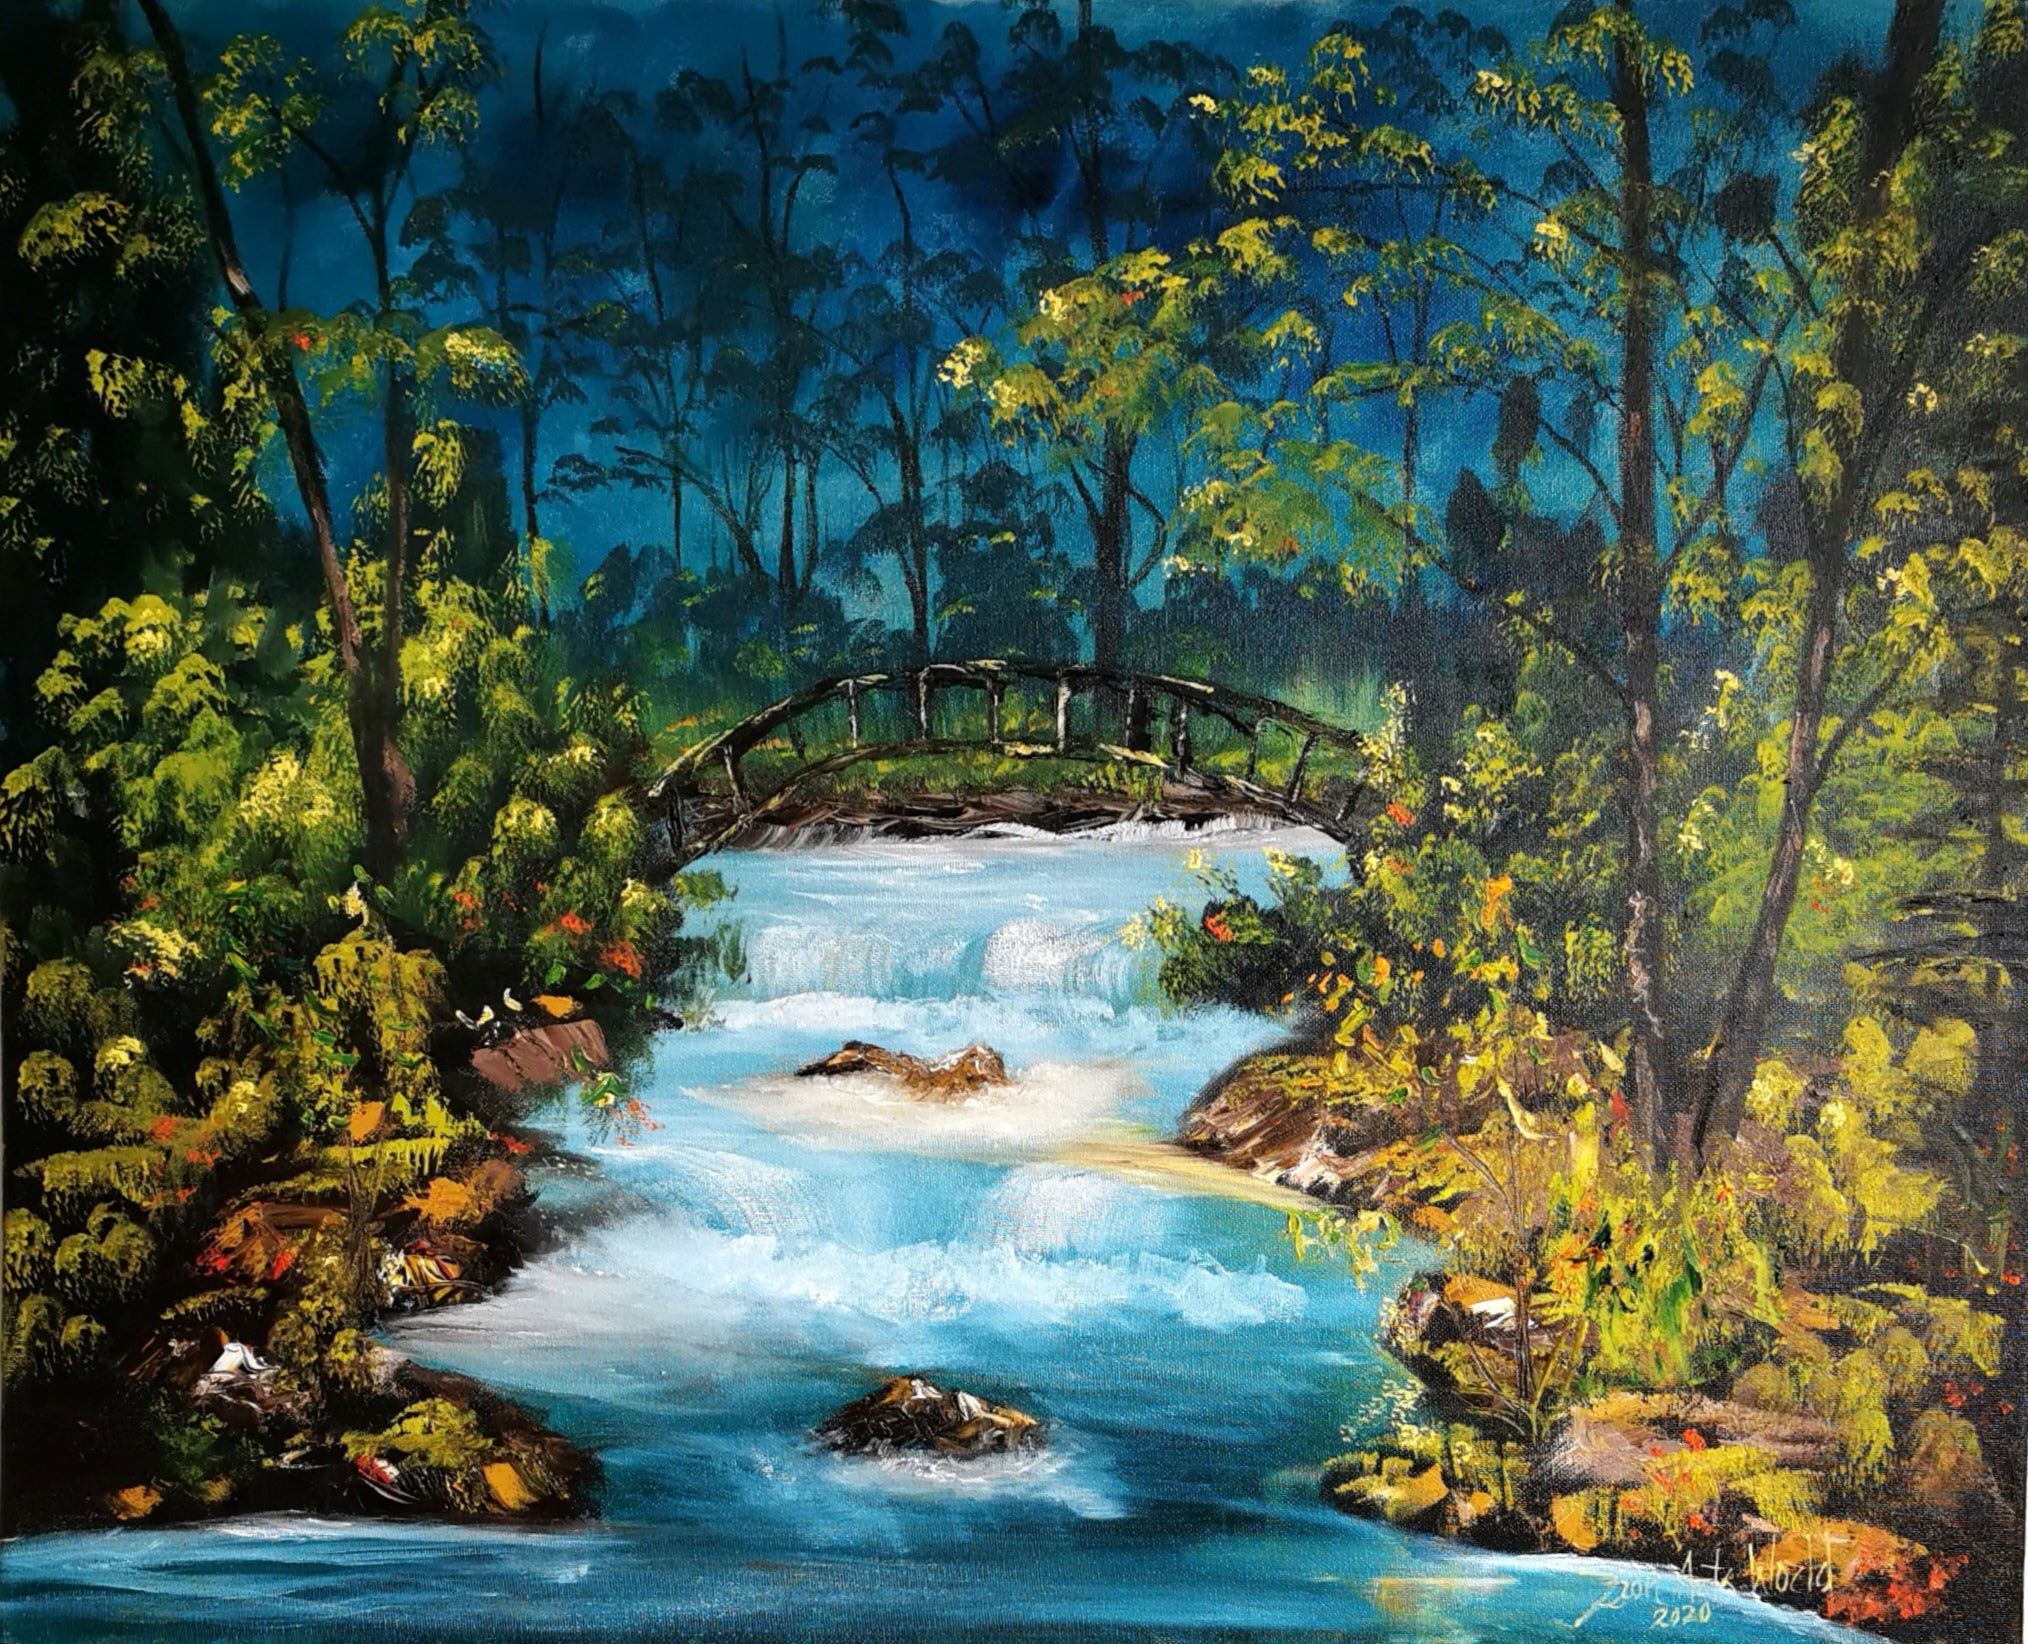 FOREST PAINTING: Forest Landscape Painting Landscape Art on Canvas